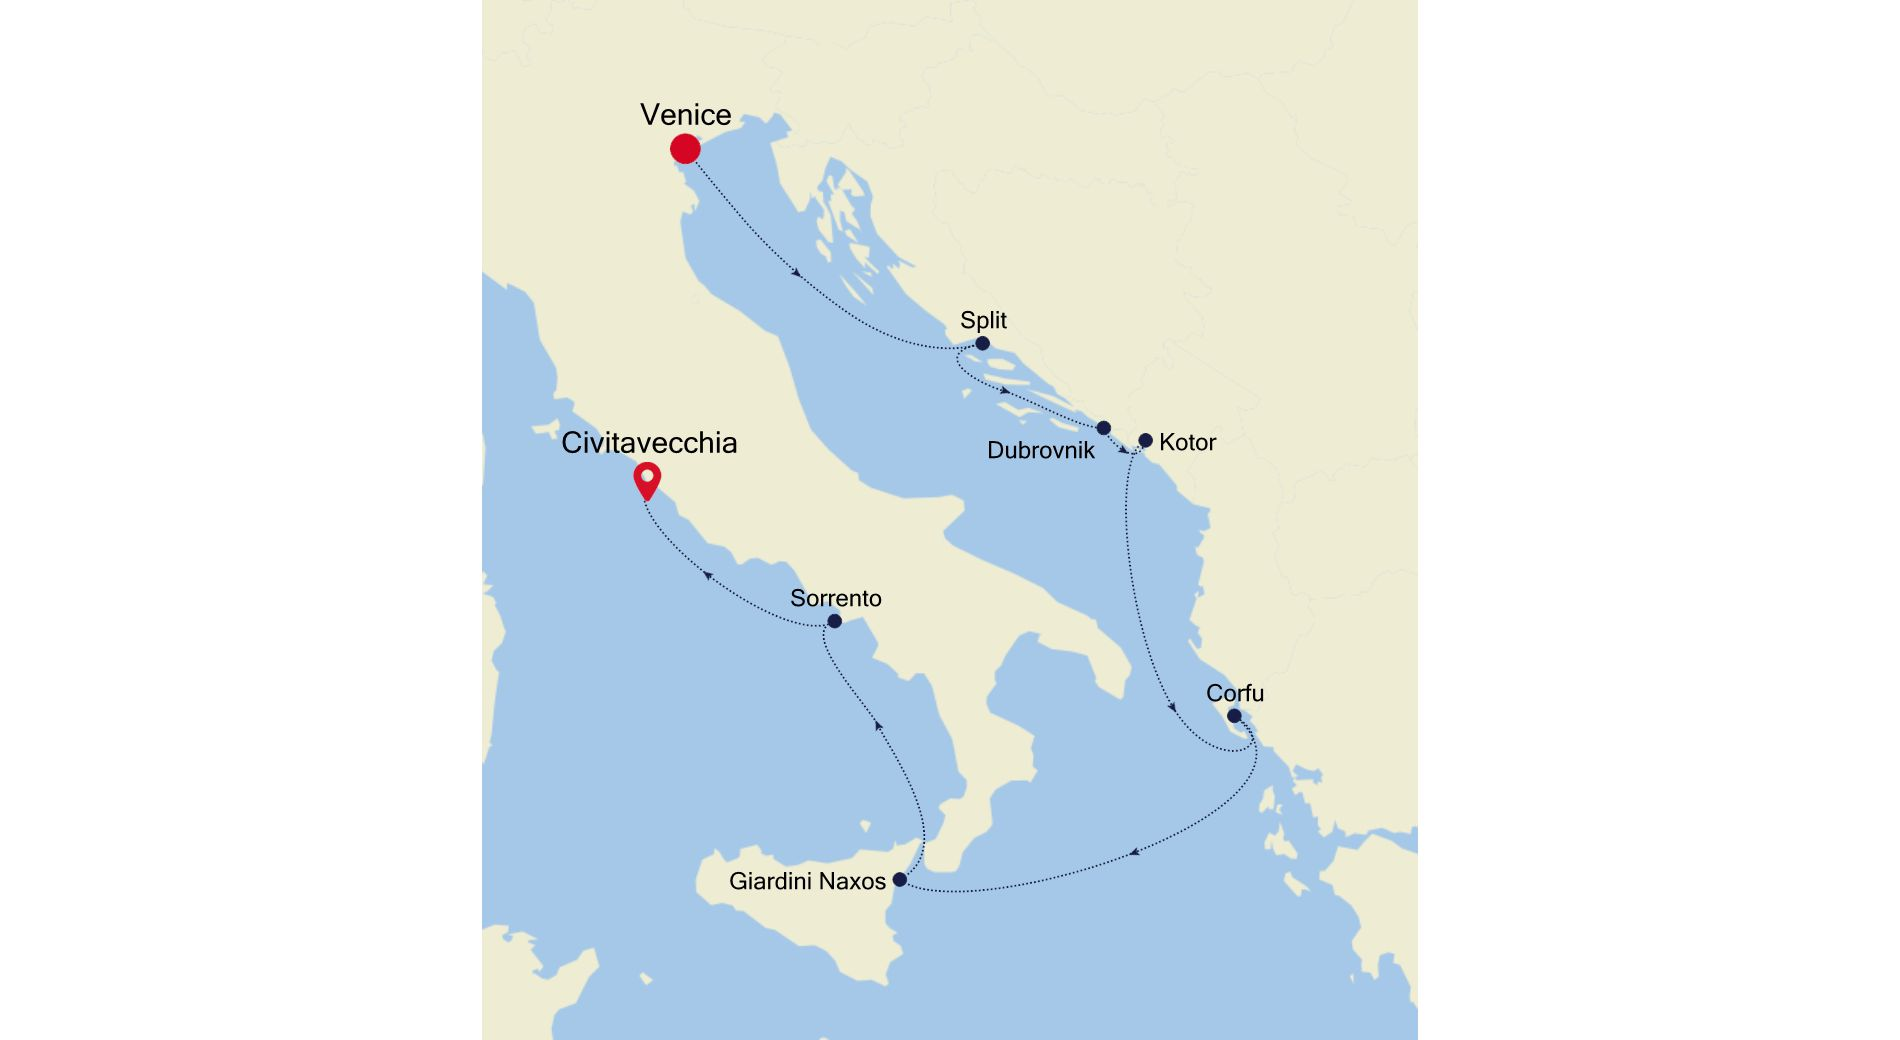 4919 - Venice to Civitavecchia